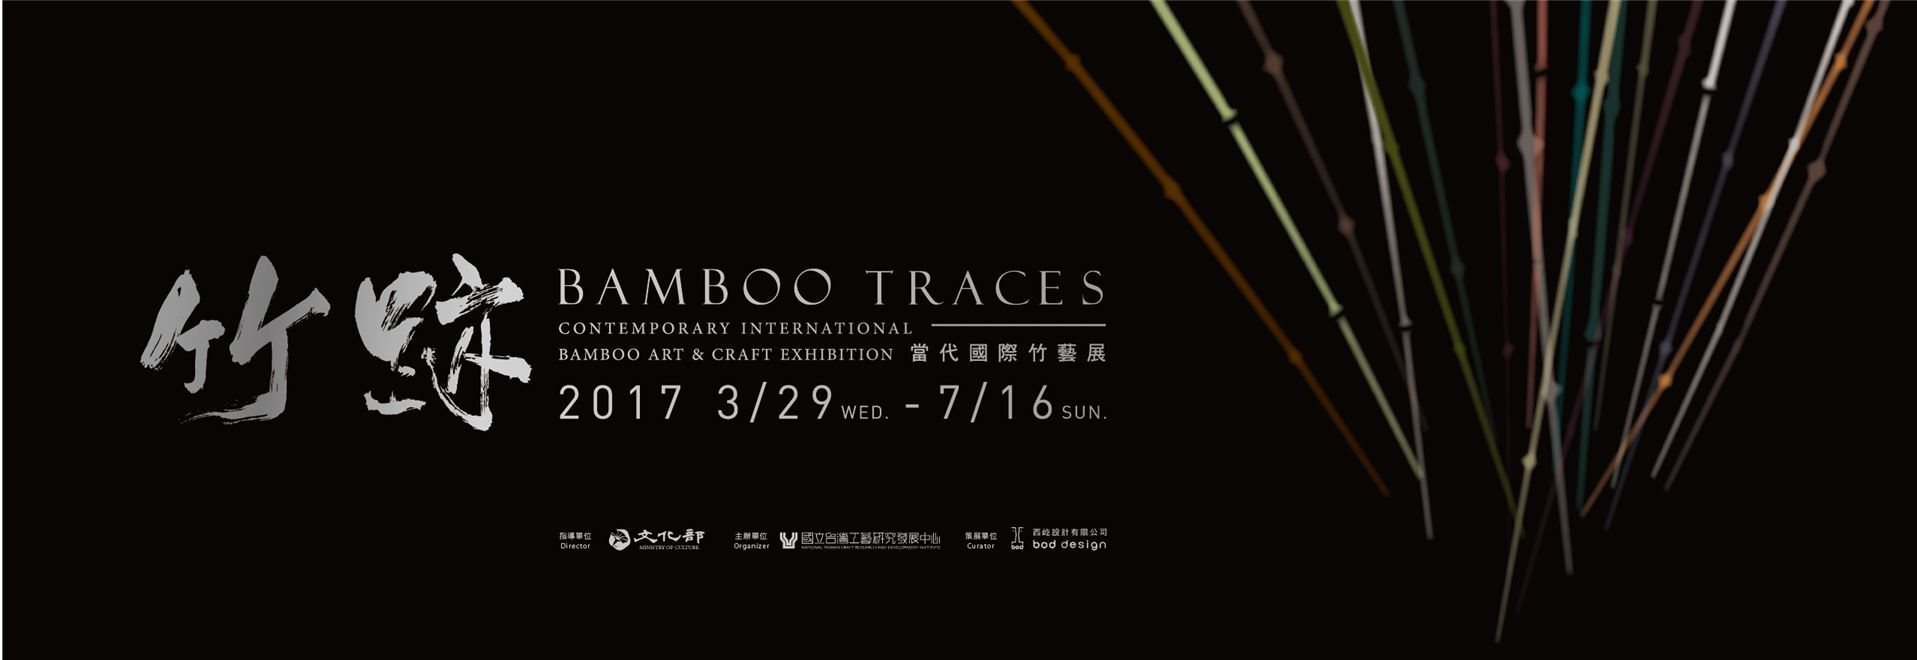 BAMBOO TRACES - CONTEMPORARY INTERNATIONAL BAMBOO ART & CRAFT EXHIBITION